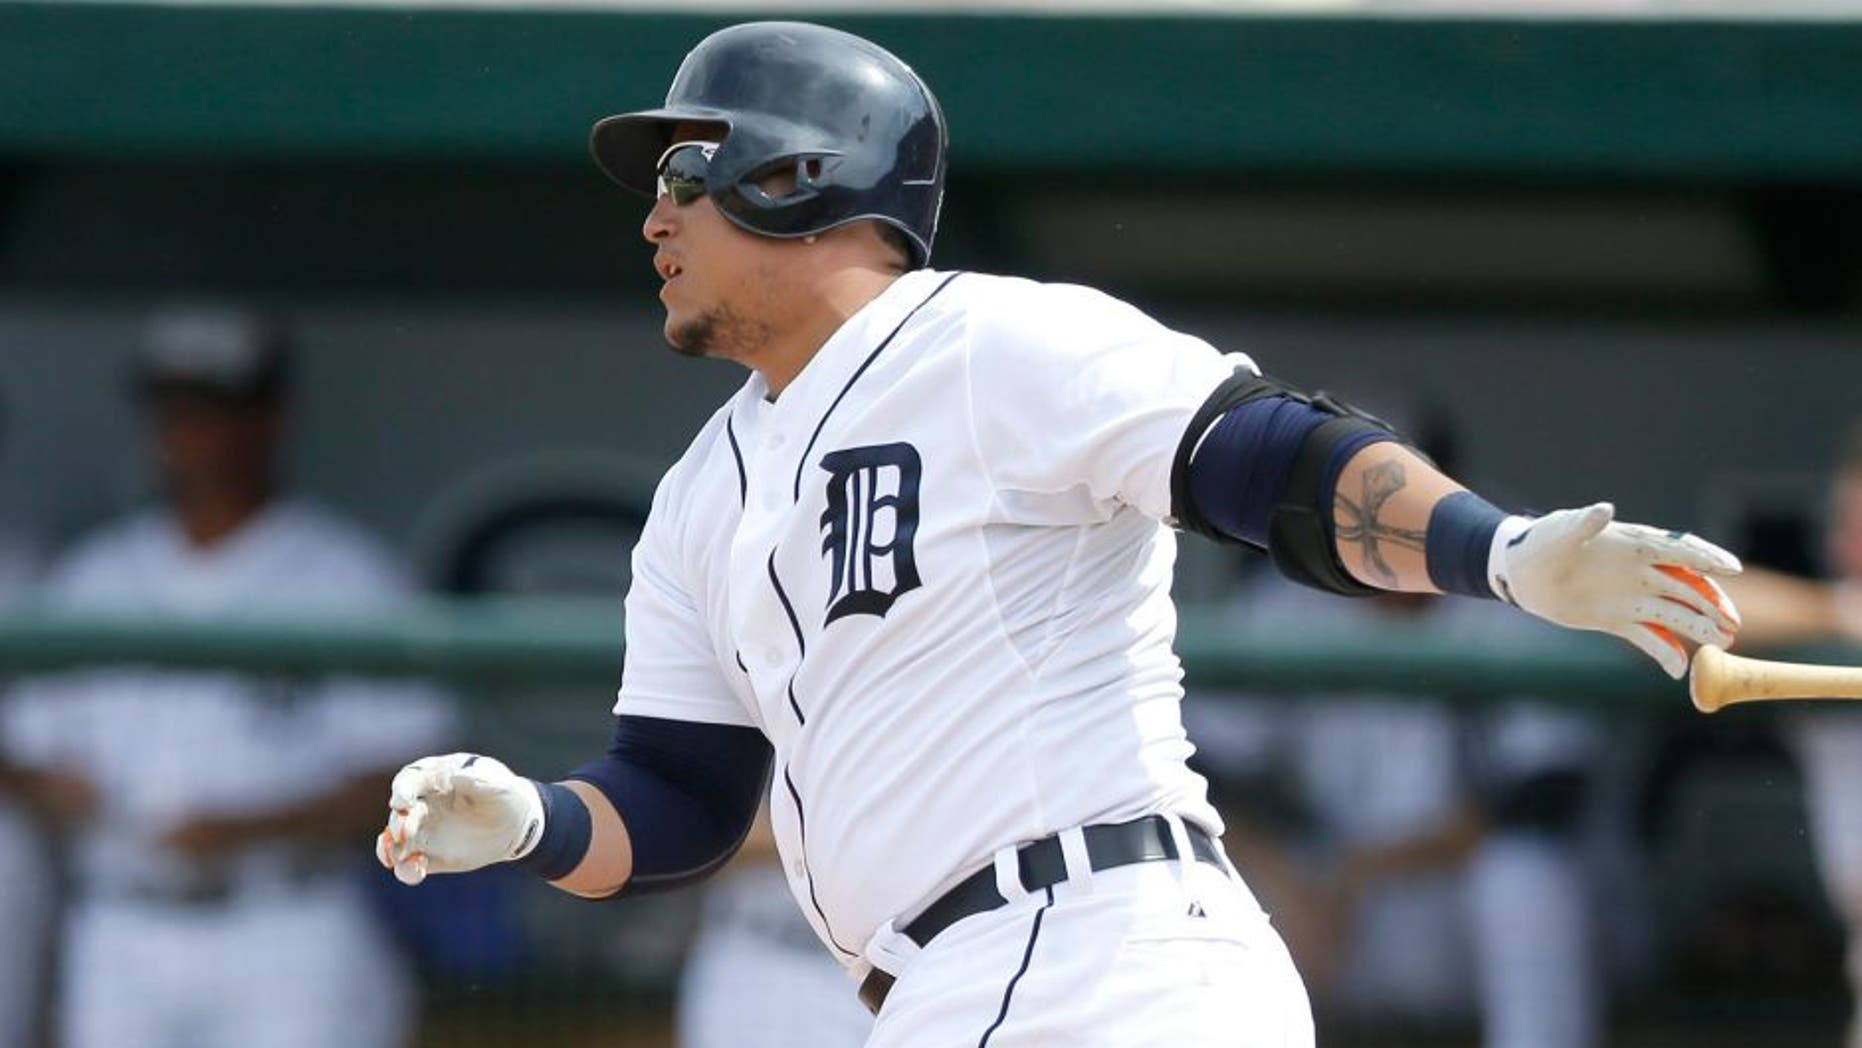 Detroit Tigers' Miguel Cabrera singles to left field during the sixth inning of a spring training exhibition baseball game against the Washington Nationals in Lakeland, Fla., Sunday, March 22, 2015. (AP Photo/Carlos Osorio)